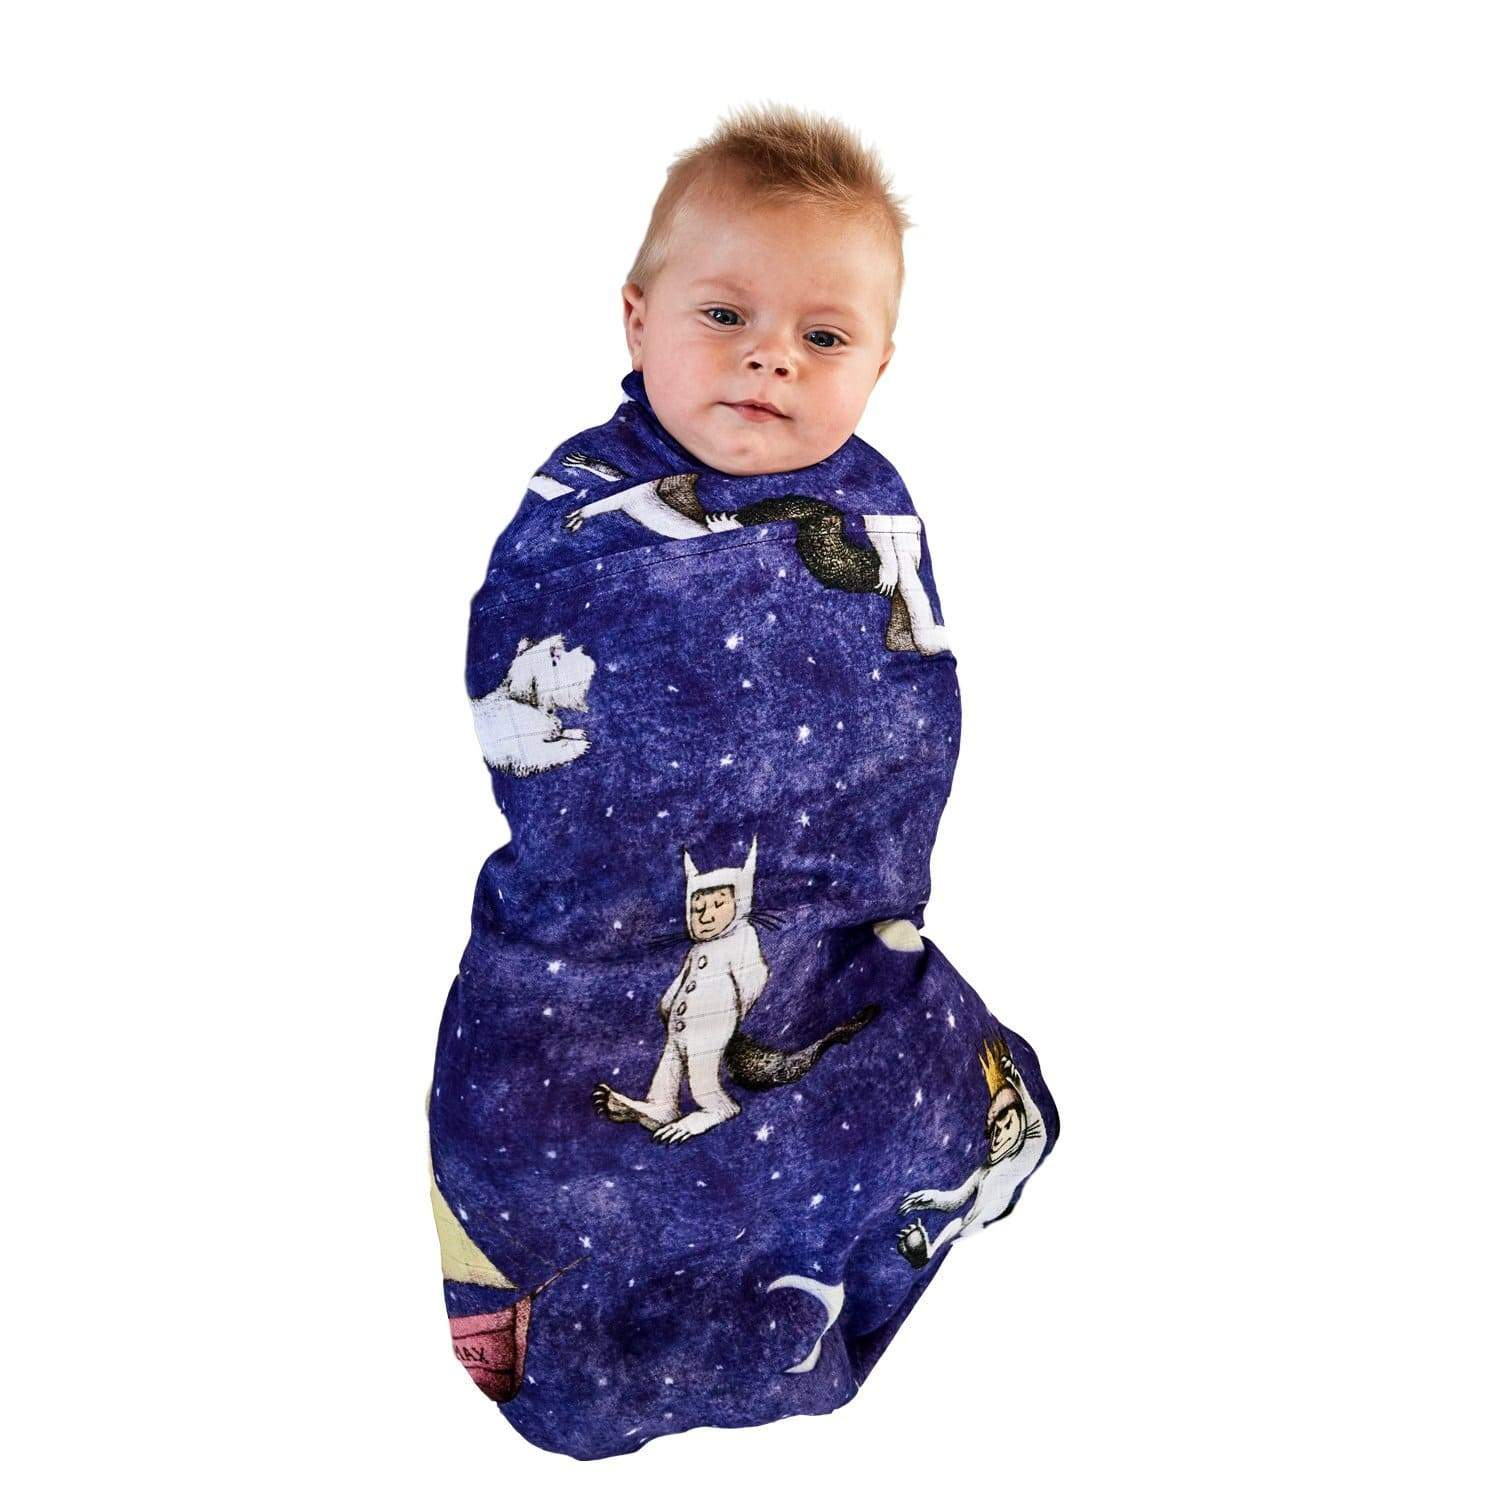 Max Night Baby Swaddle